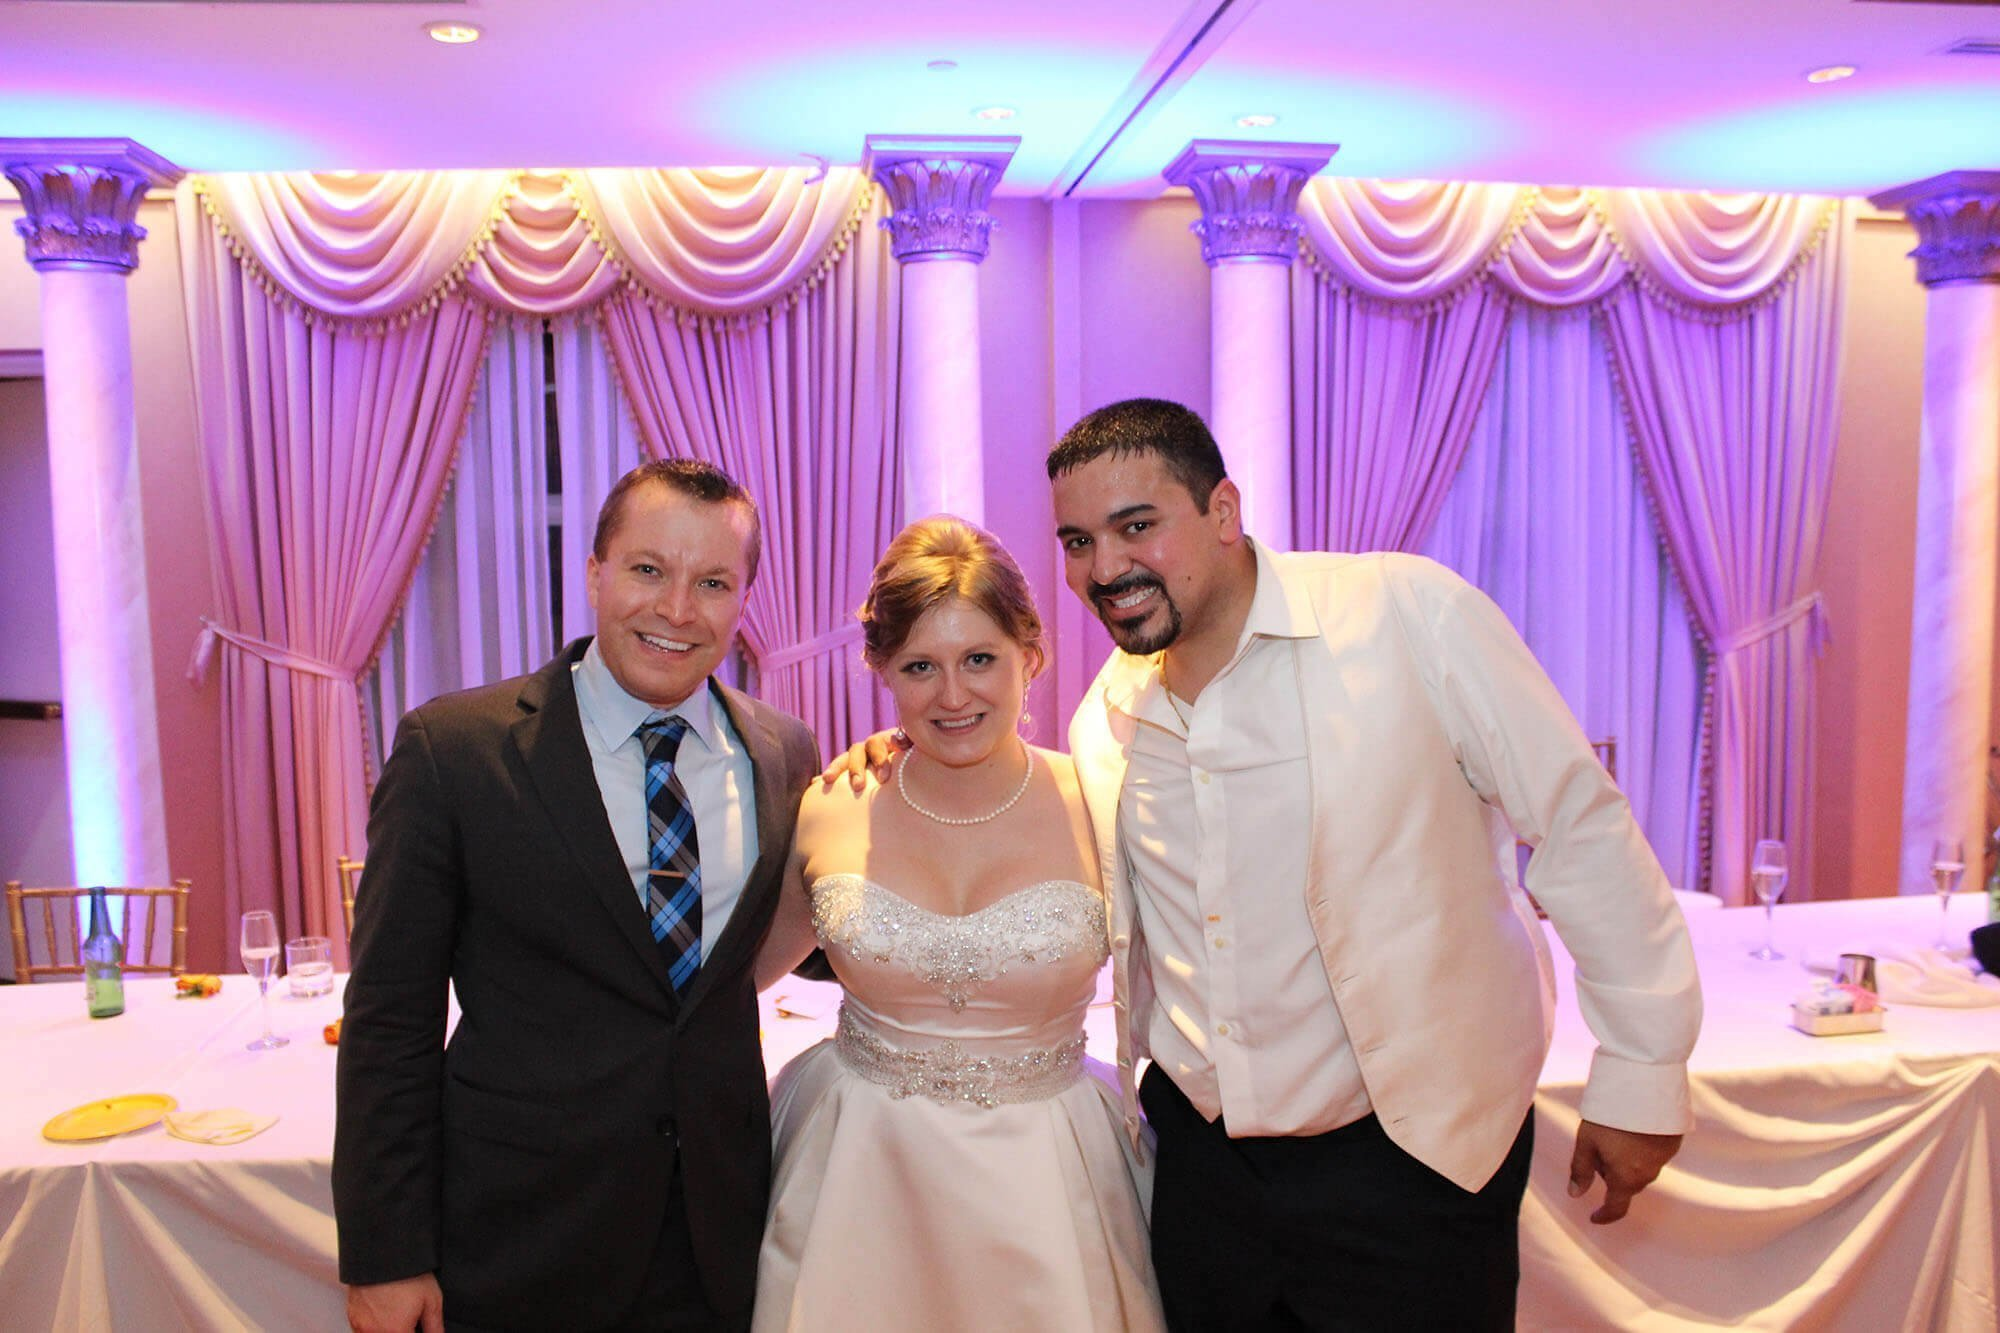 European Crystal Banquets Arlington Heights Wedding DJ with Happy Couple Blog Cover